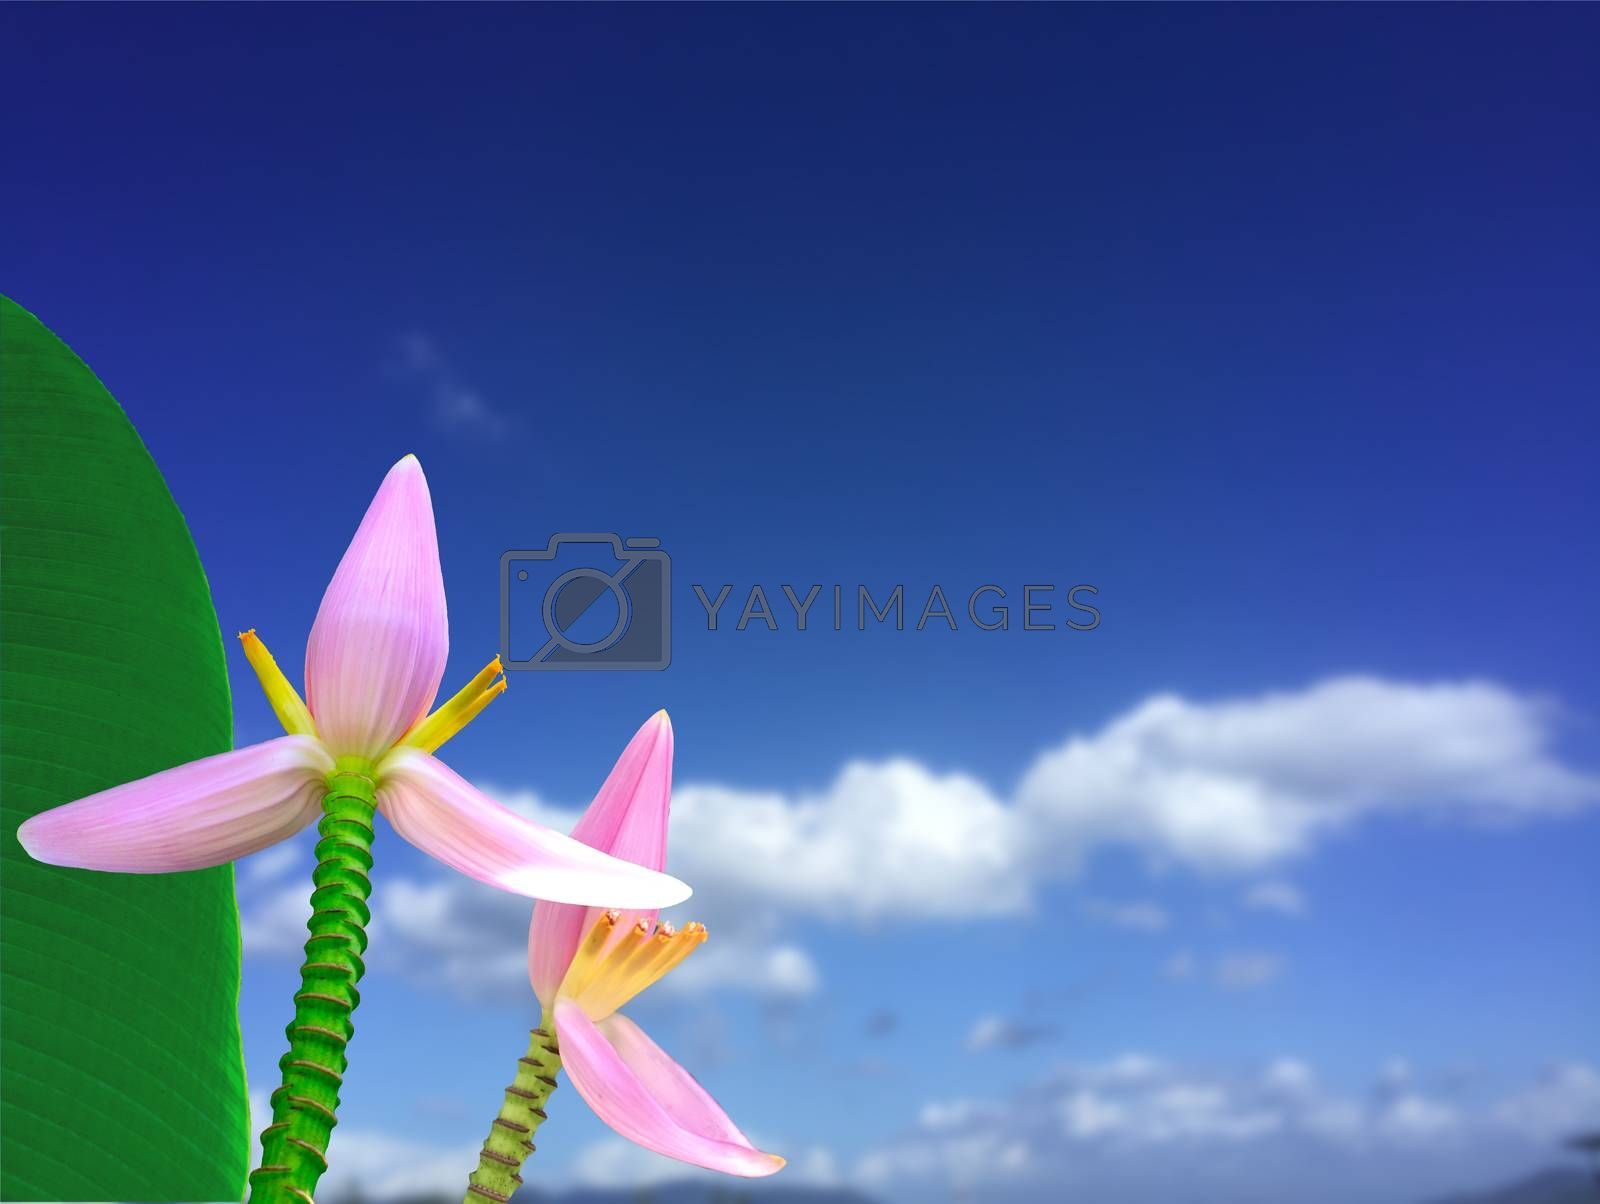 Pink banana flowers beautiful blossom with blue sky nature blurred background. Floral nature background with Copy space.